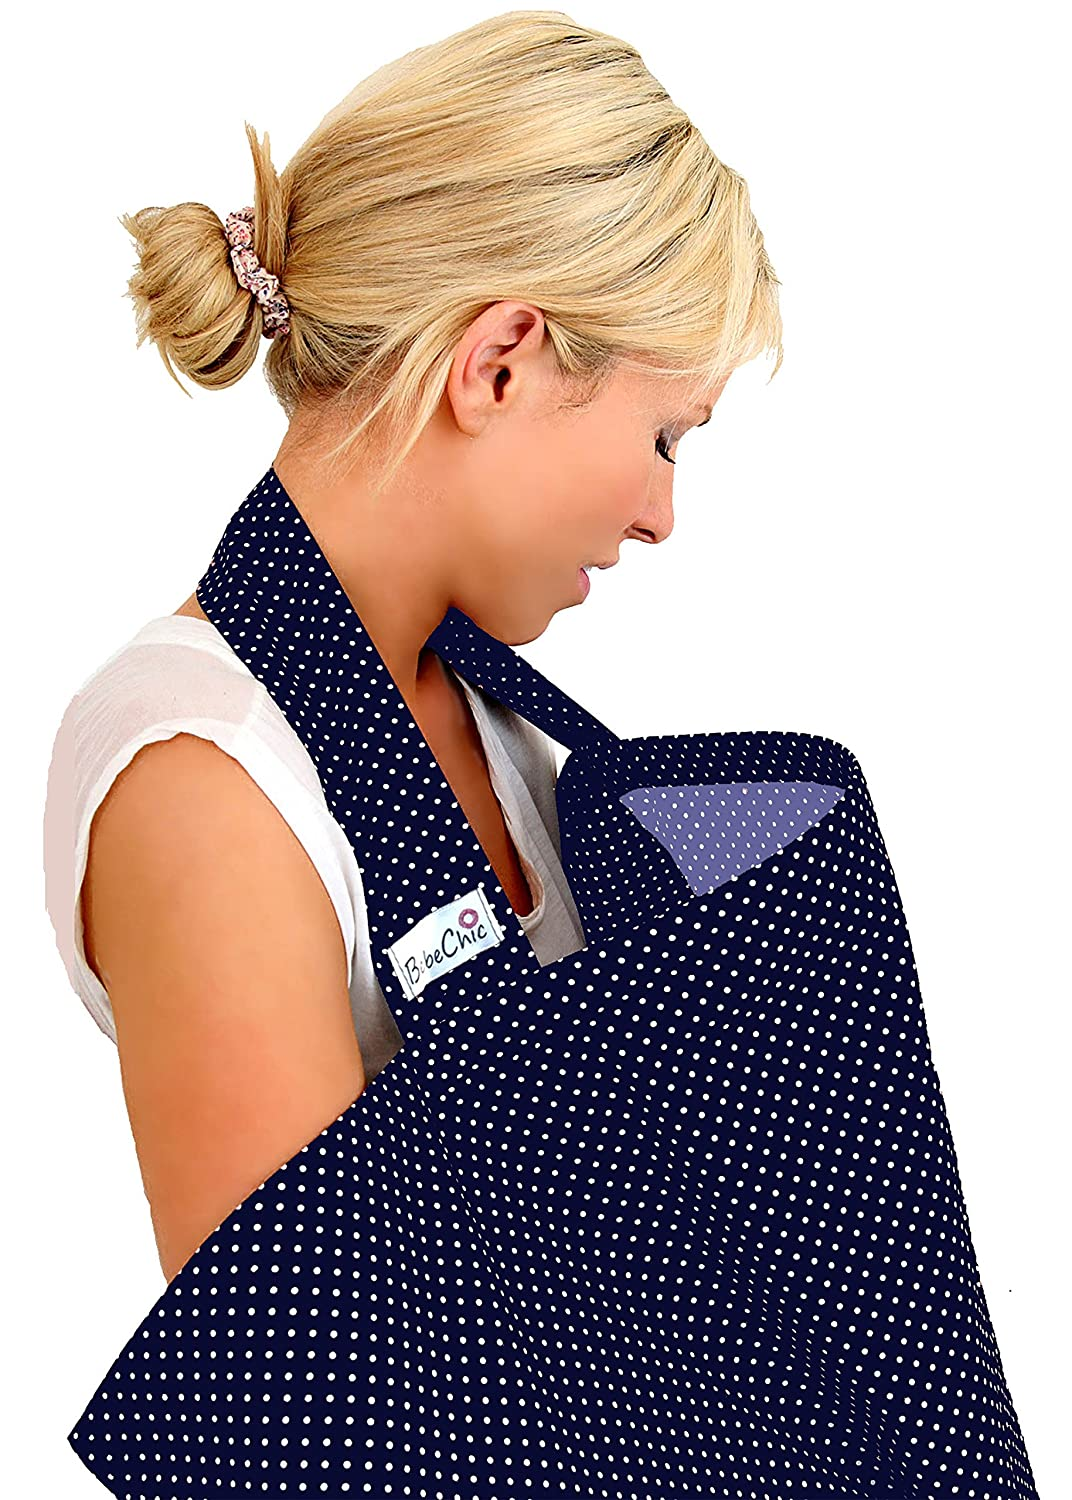 BebeChic.UK * Top Quality Oeko-Tex® Certified 100% Cotton * Breastfeeding Covers * Boned Nursing Tops - with Storage Bag - navy blue / white dot BebeChic Limited navyblue01